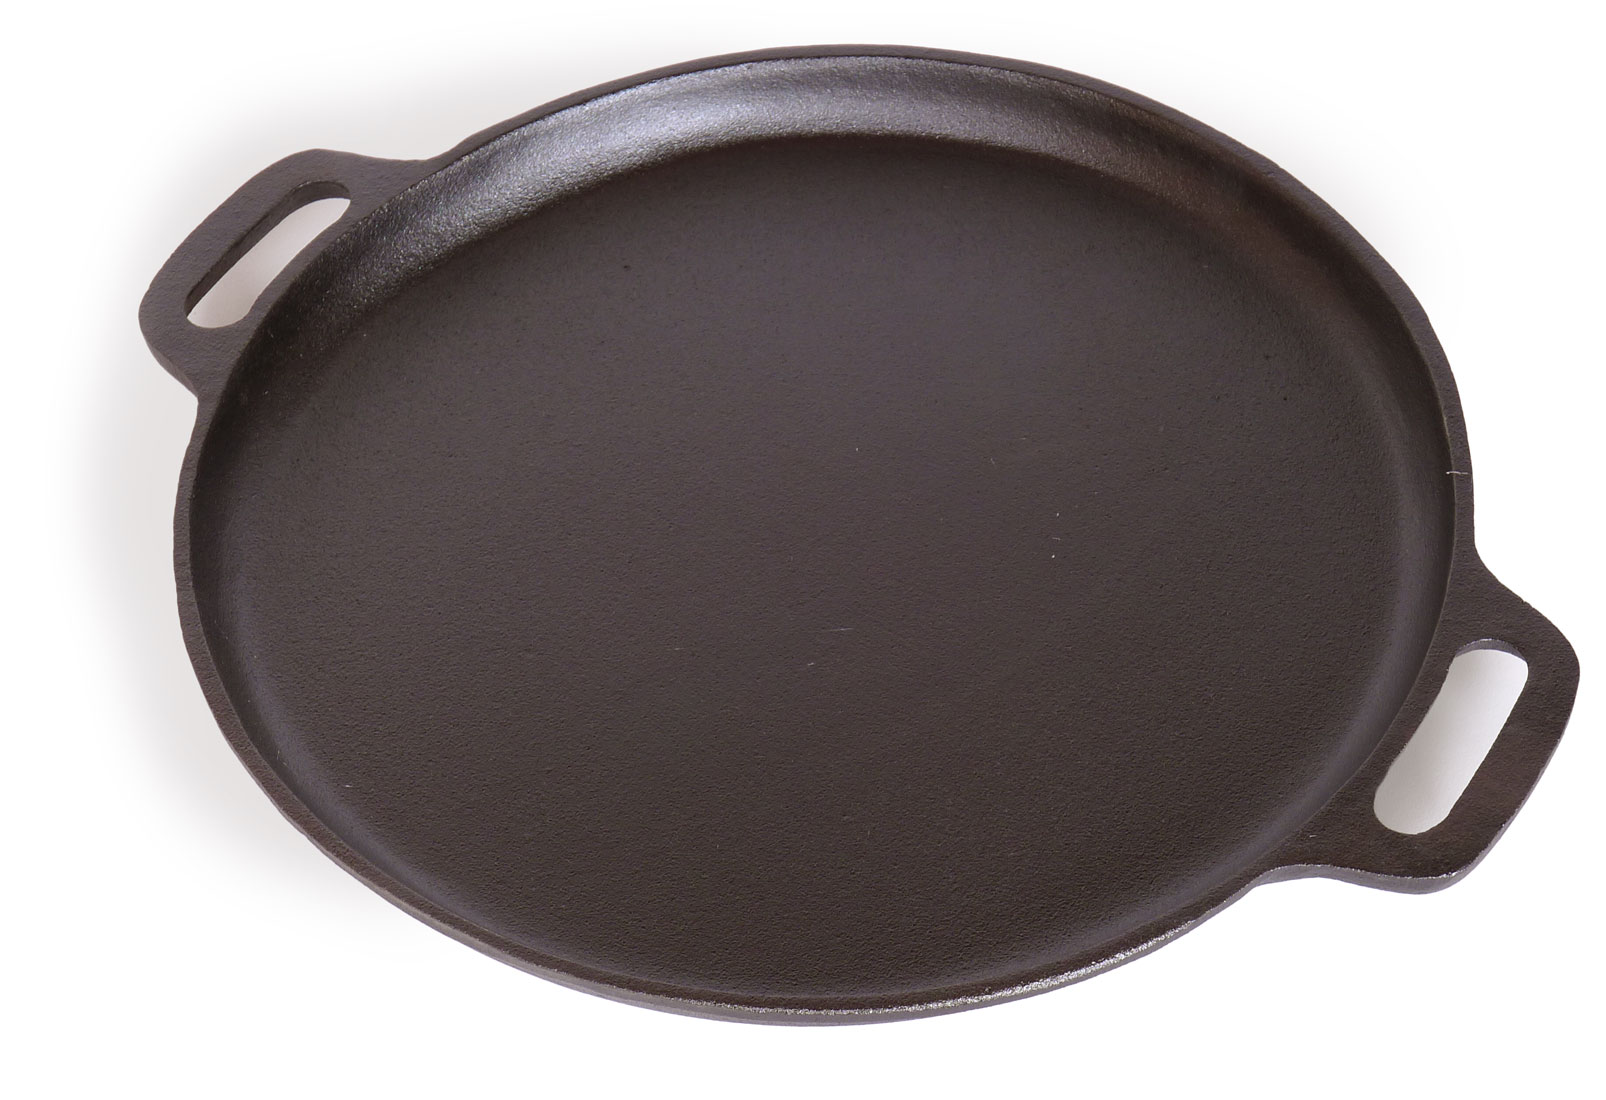 Image of 14 Inch Thick Cast Iron Pizza Stone